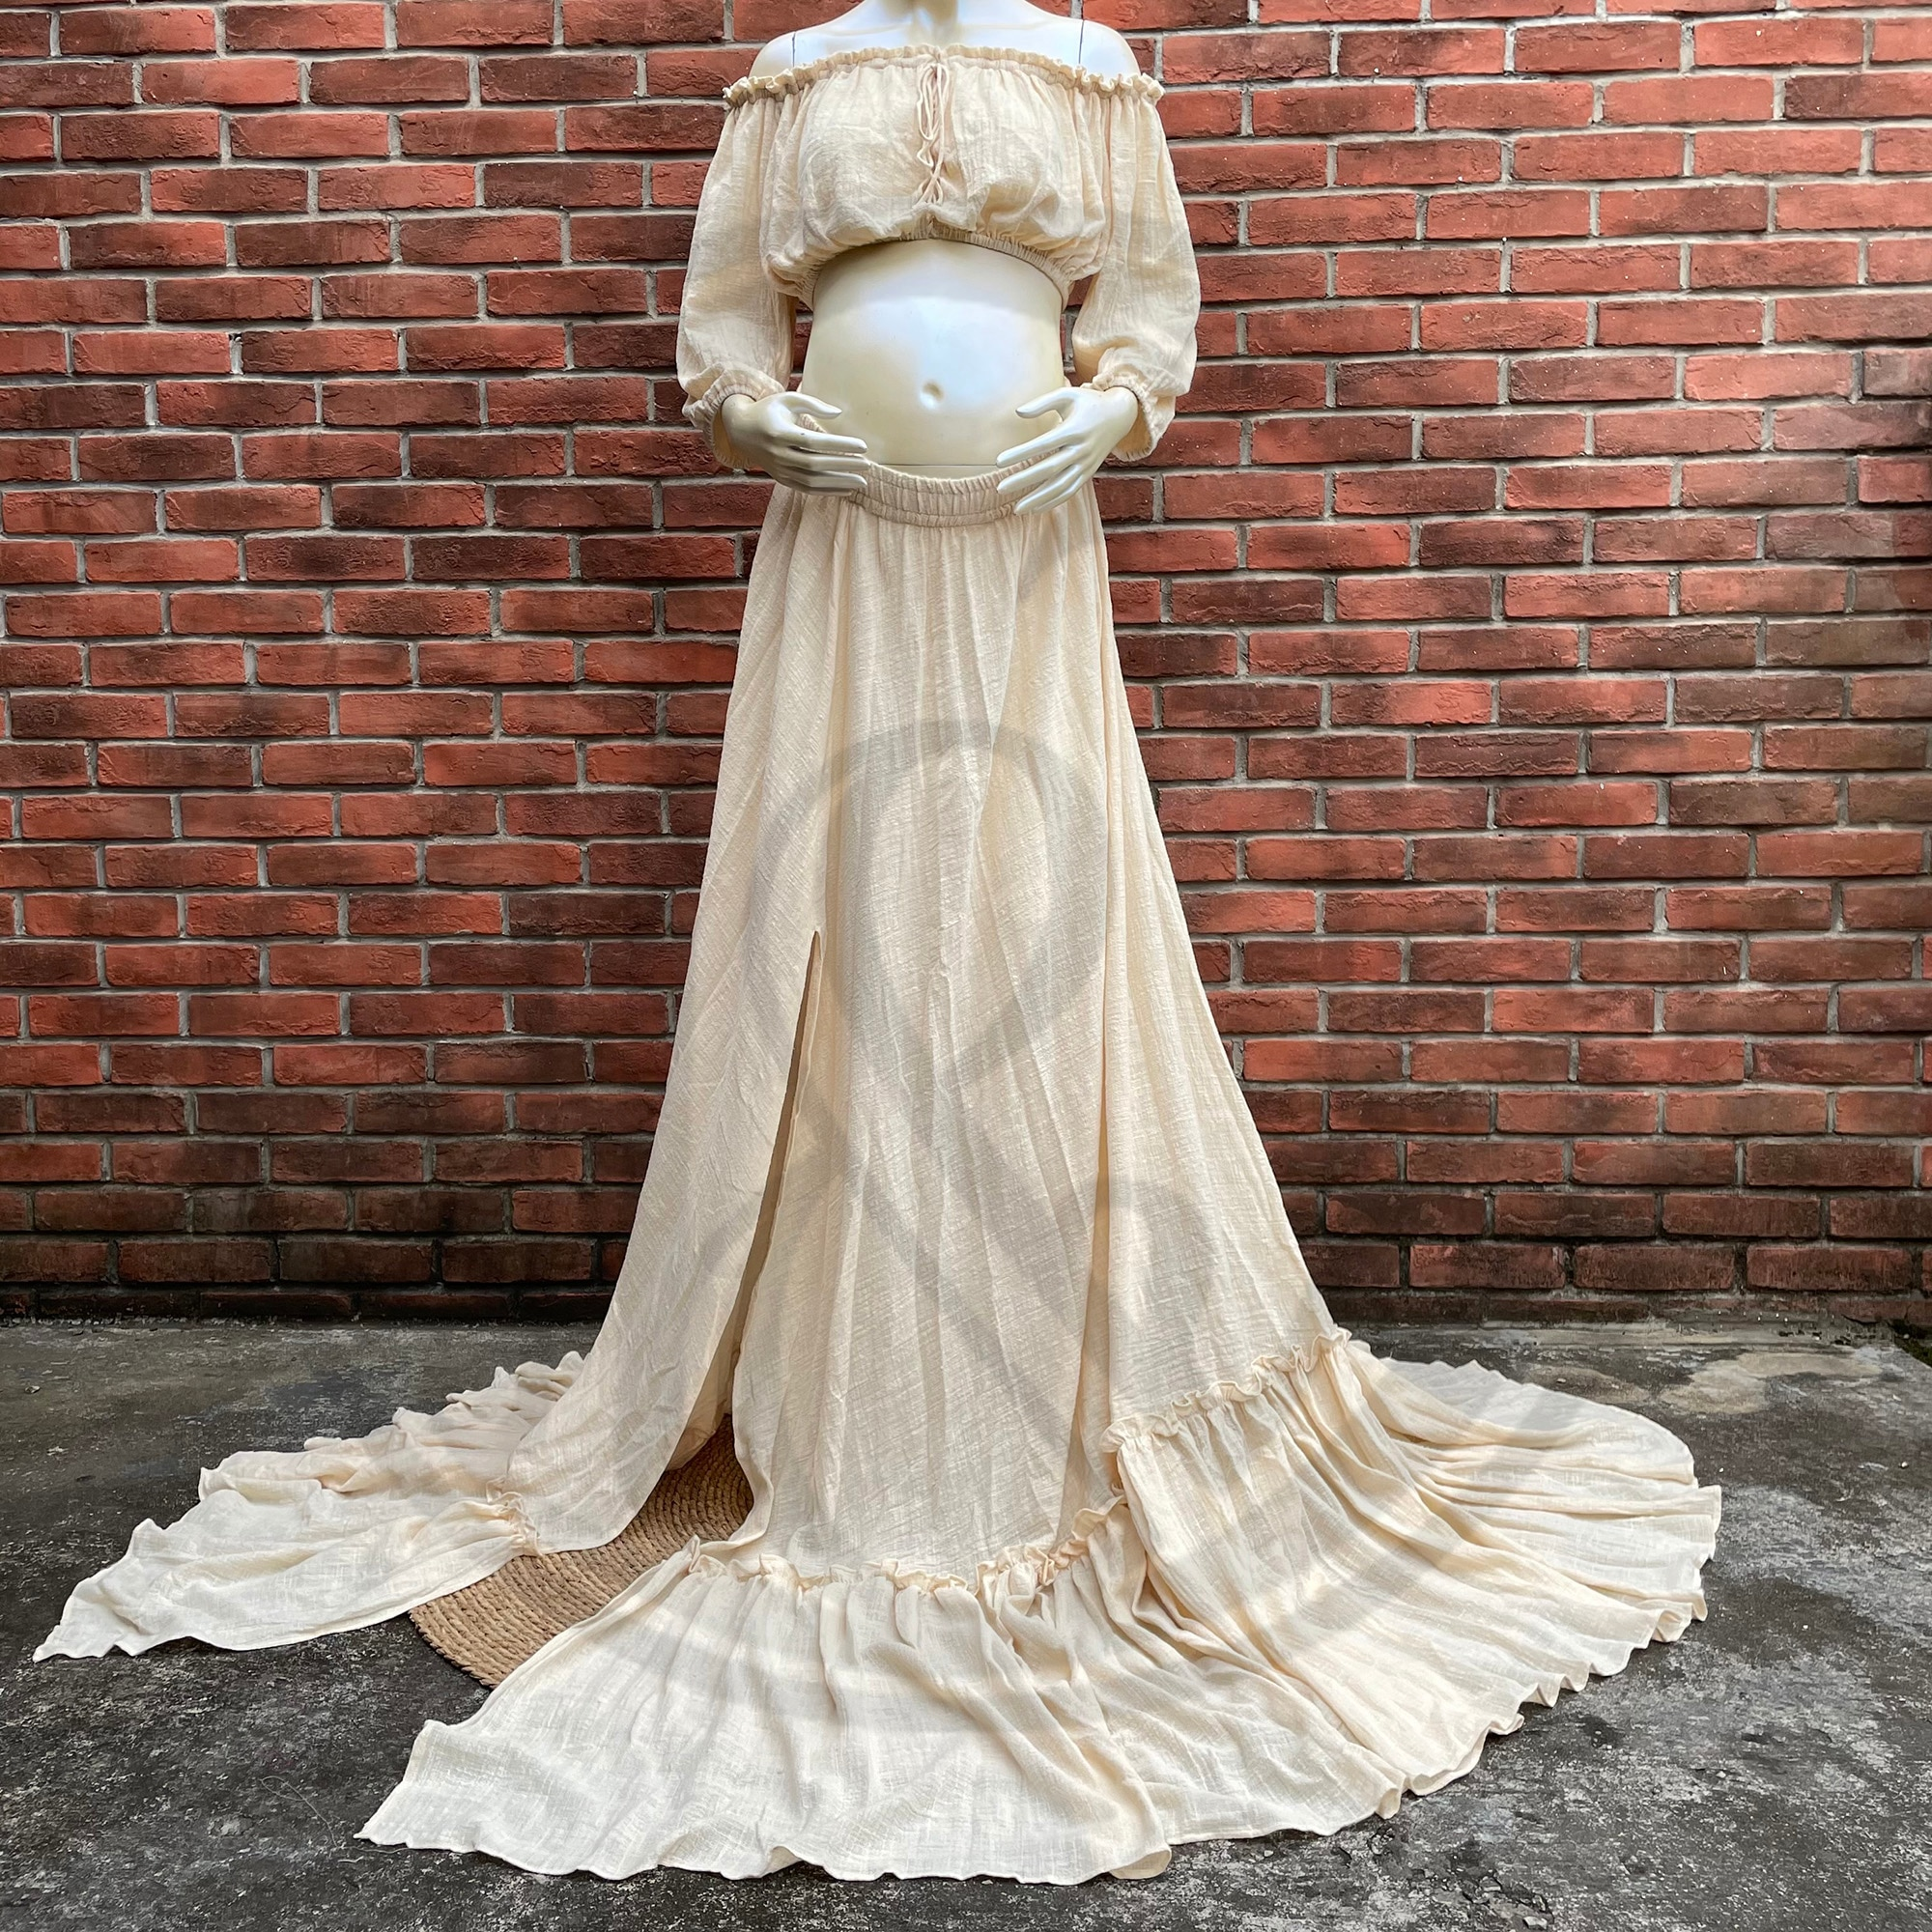 Photo Shoot Props A Suit Cotton Kaftan Full Sleeves Robe Maternity Dress Evening Party Costume for Women Photography Accessories